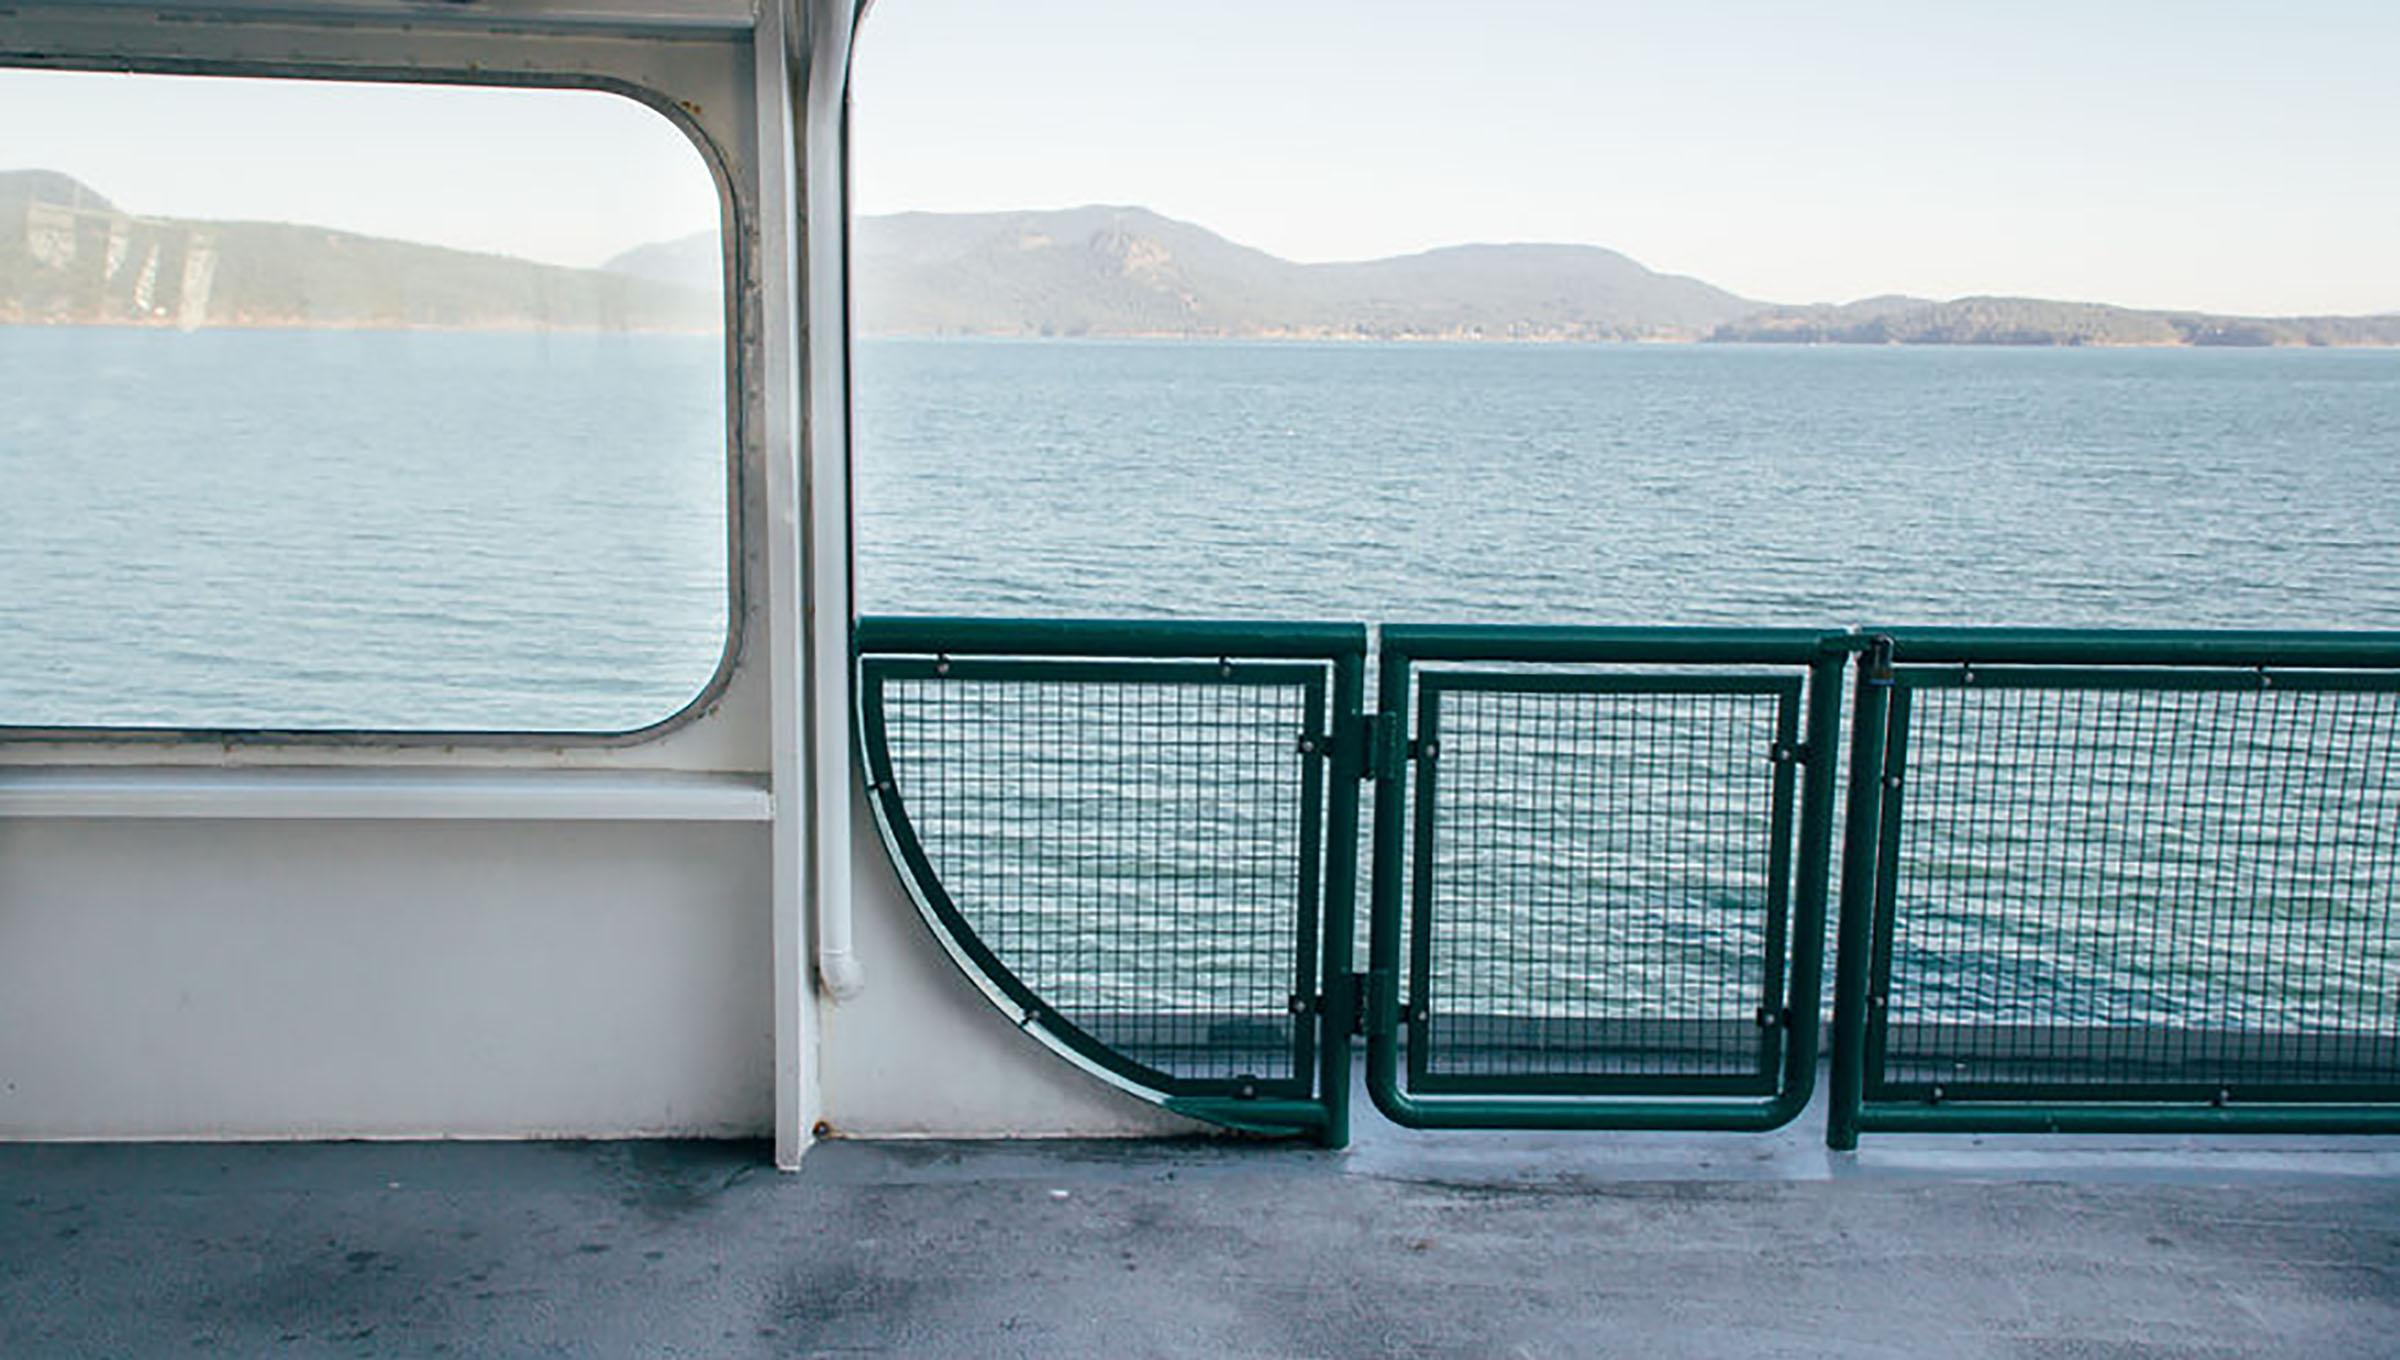 Side Rail And Enclosure On Upper Deck of Passenger Ferry Boat